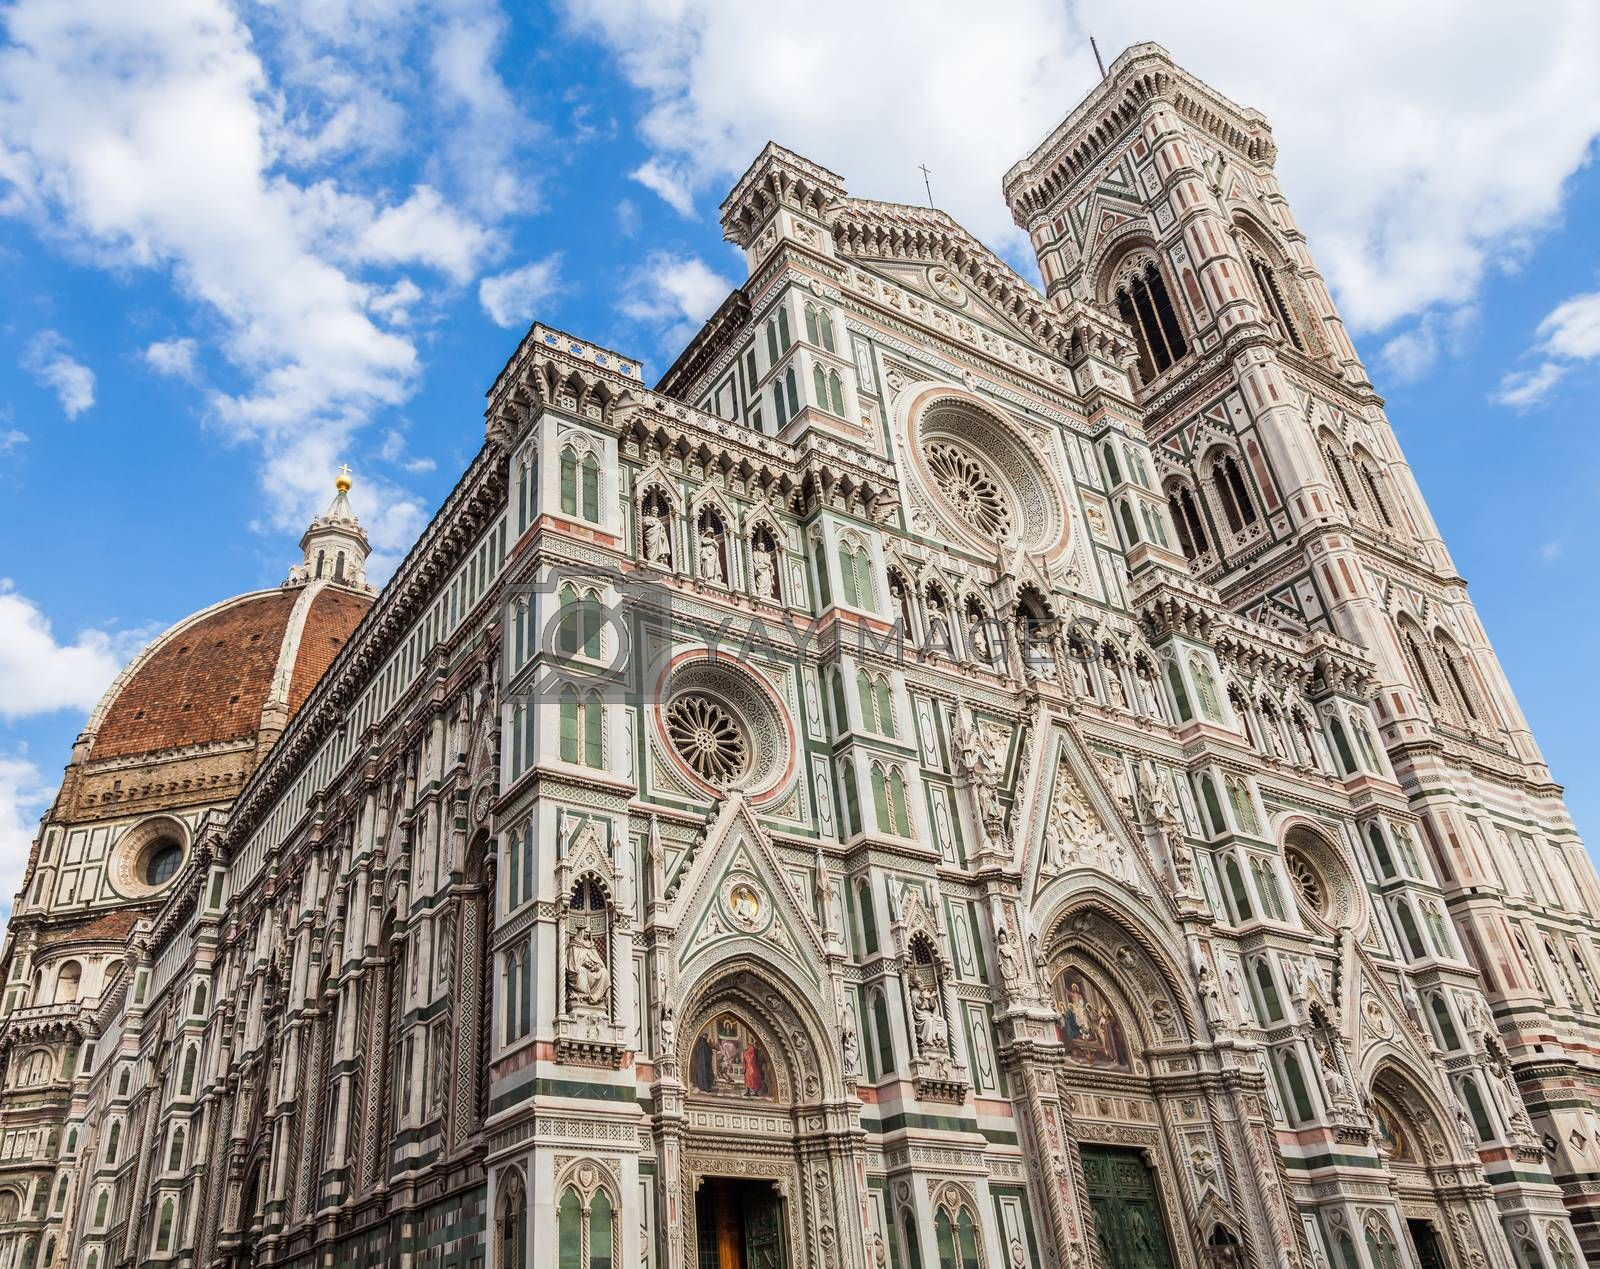 Royalty free image of Duomo di Firenze by Perseomedusa